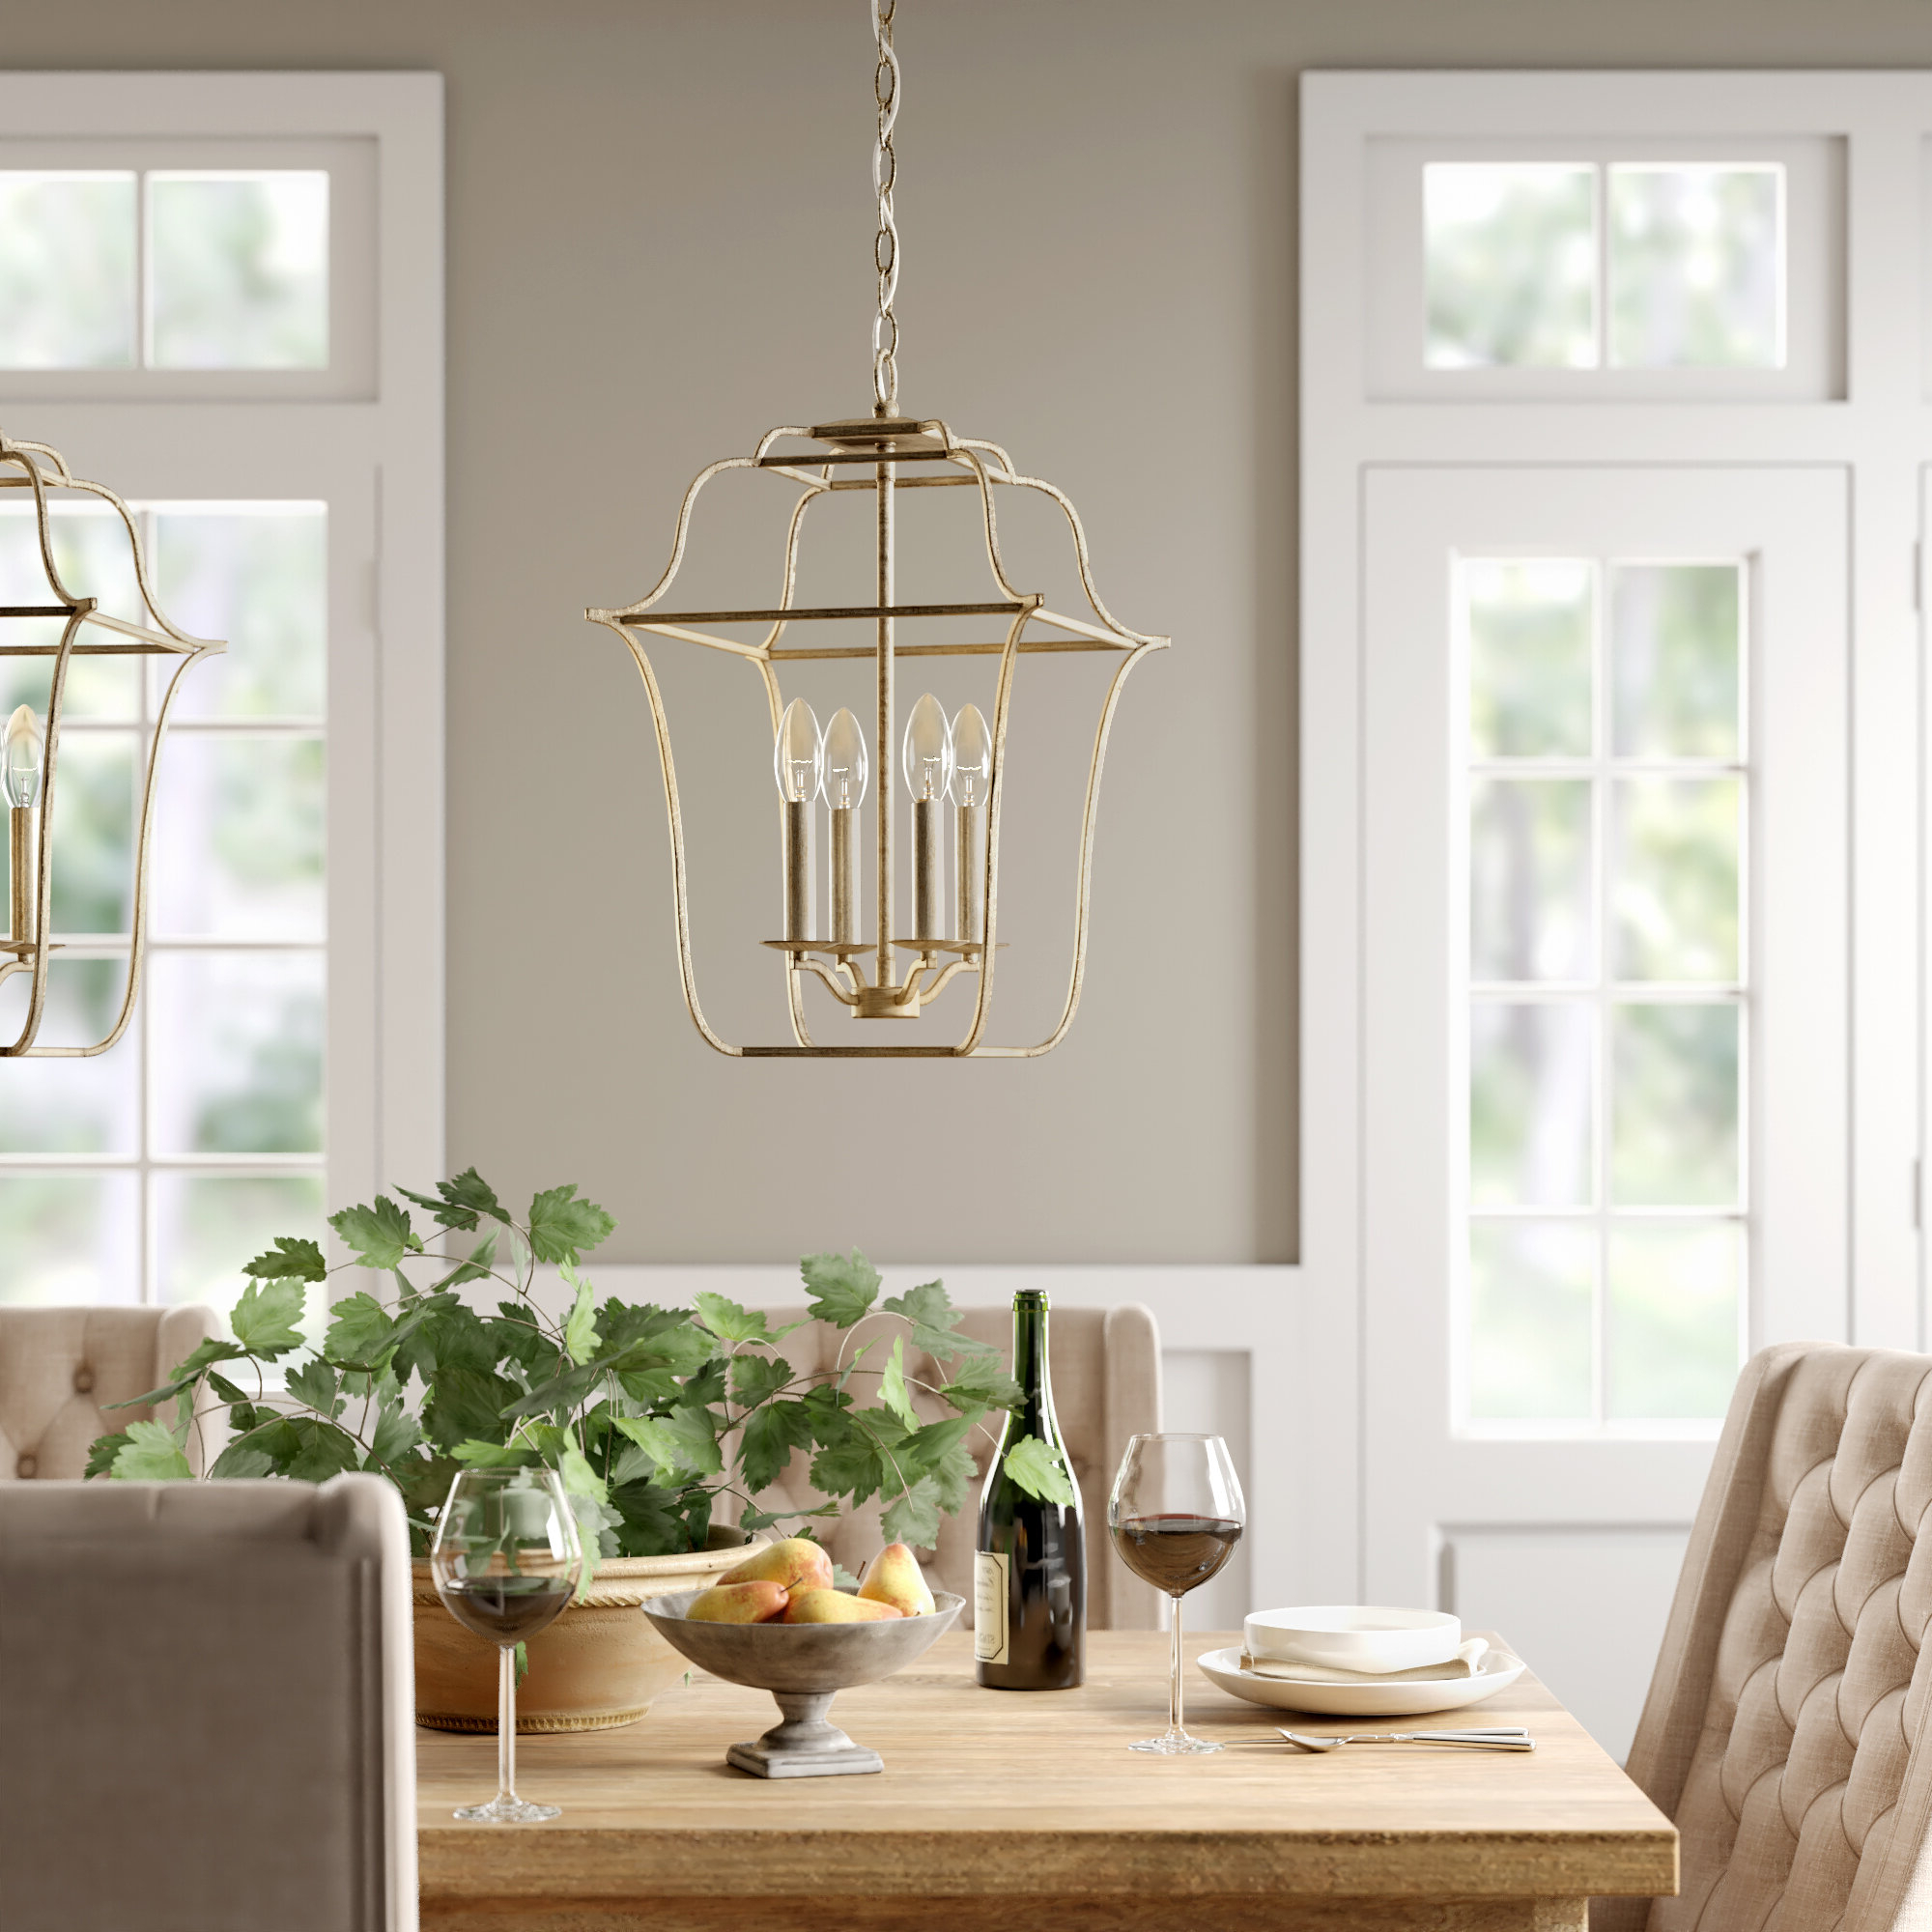 Chloe 4 Light Lantern Geometric Pendant With Most Current Kierra 4 Light Unique / Statement Chandeliers (View 6 of 25)